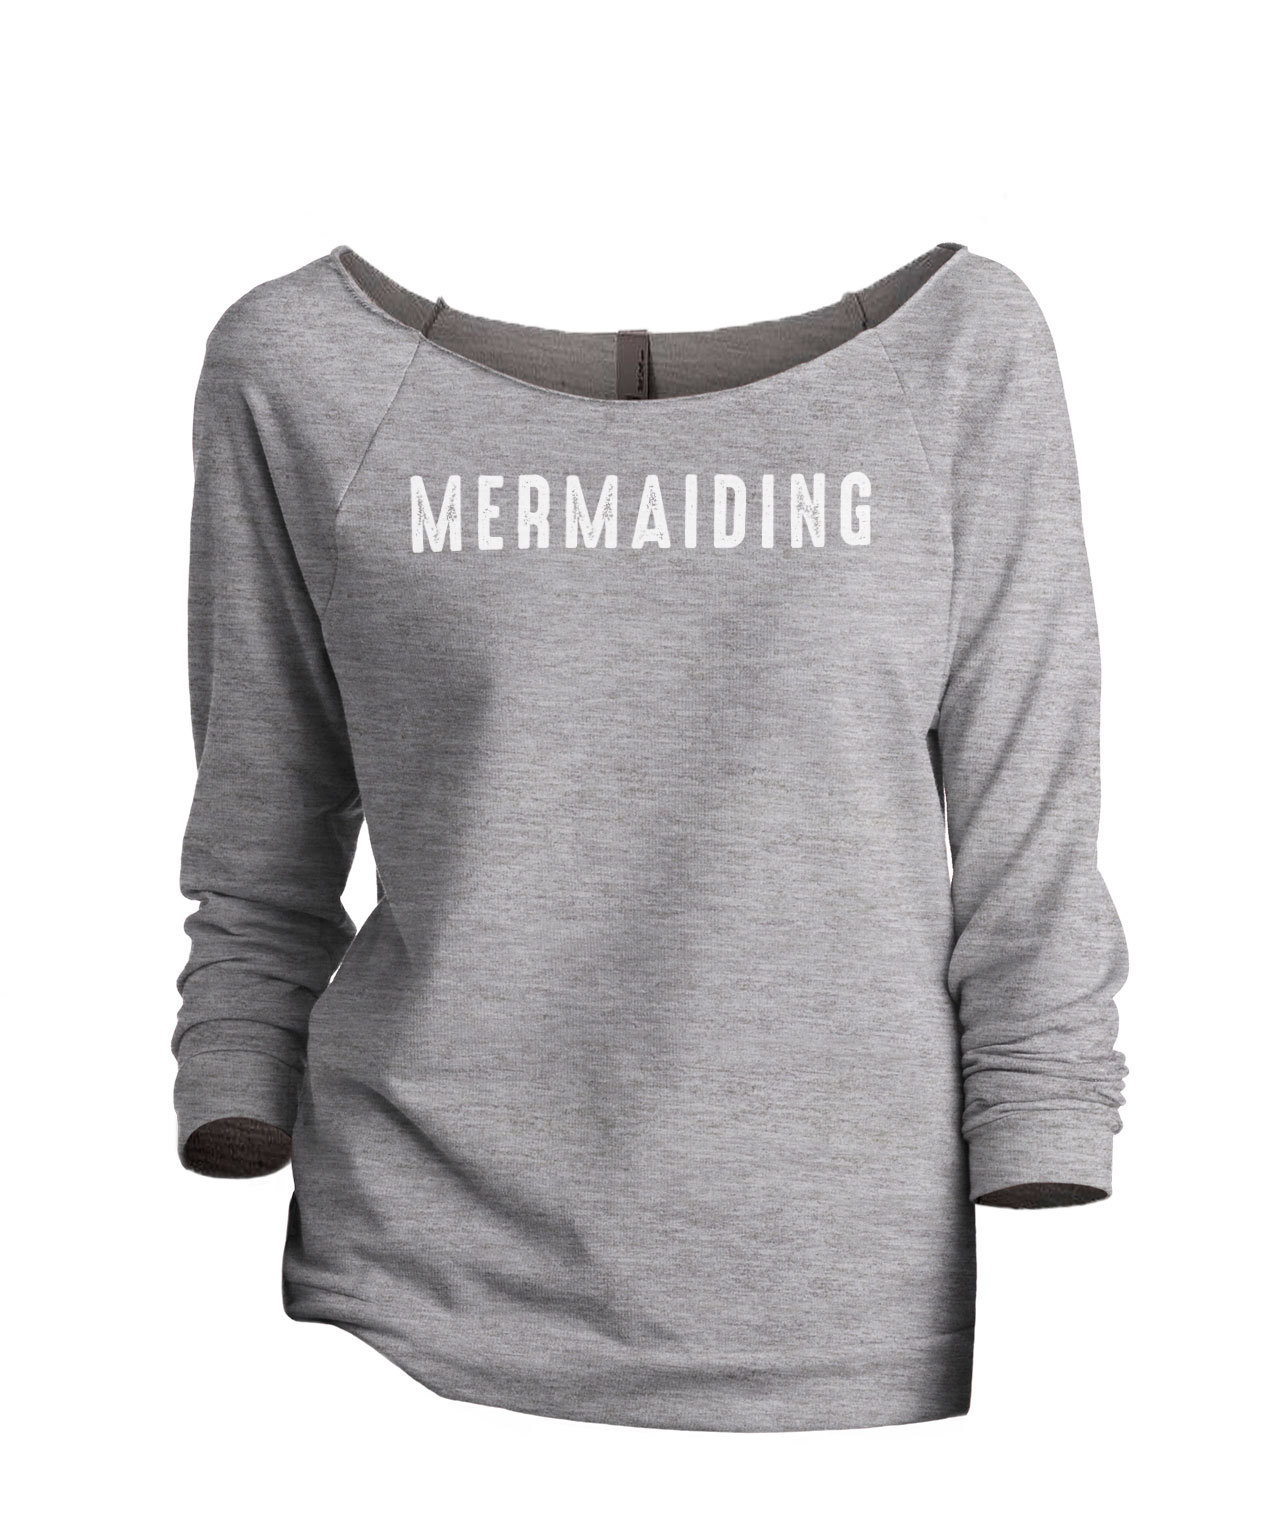 Thread Tank Mermaiding Women's Slouchy 3/4 Sleeves Raglan Sweatshirt Sport Grey